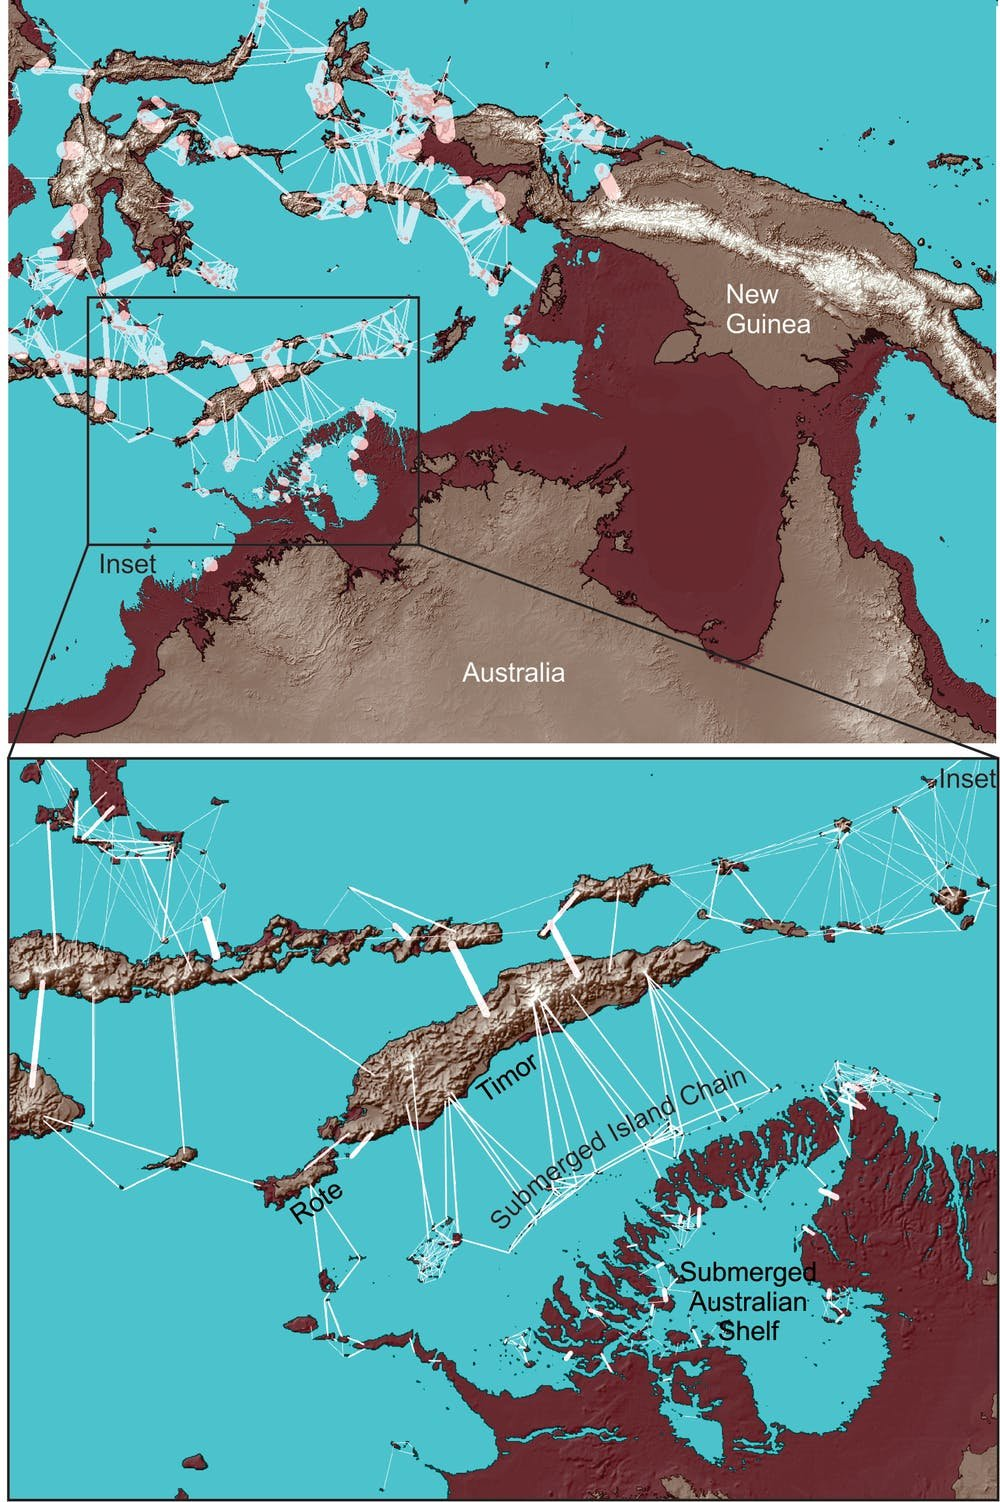 islandhopping study shows the most likely route the first